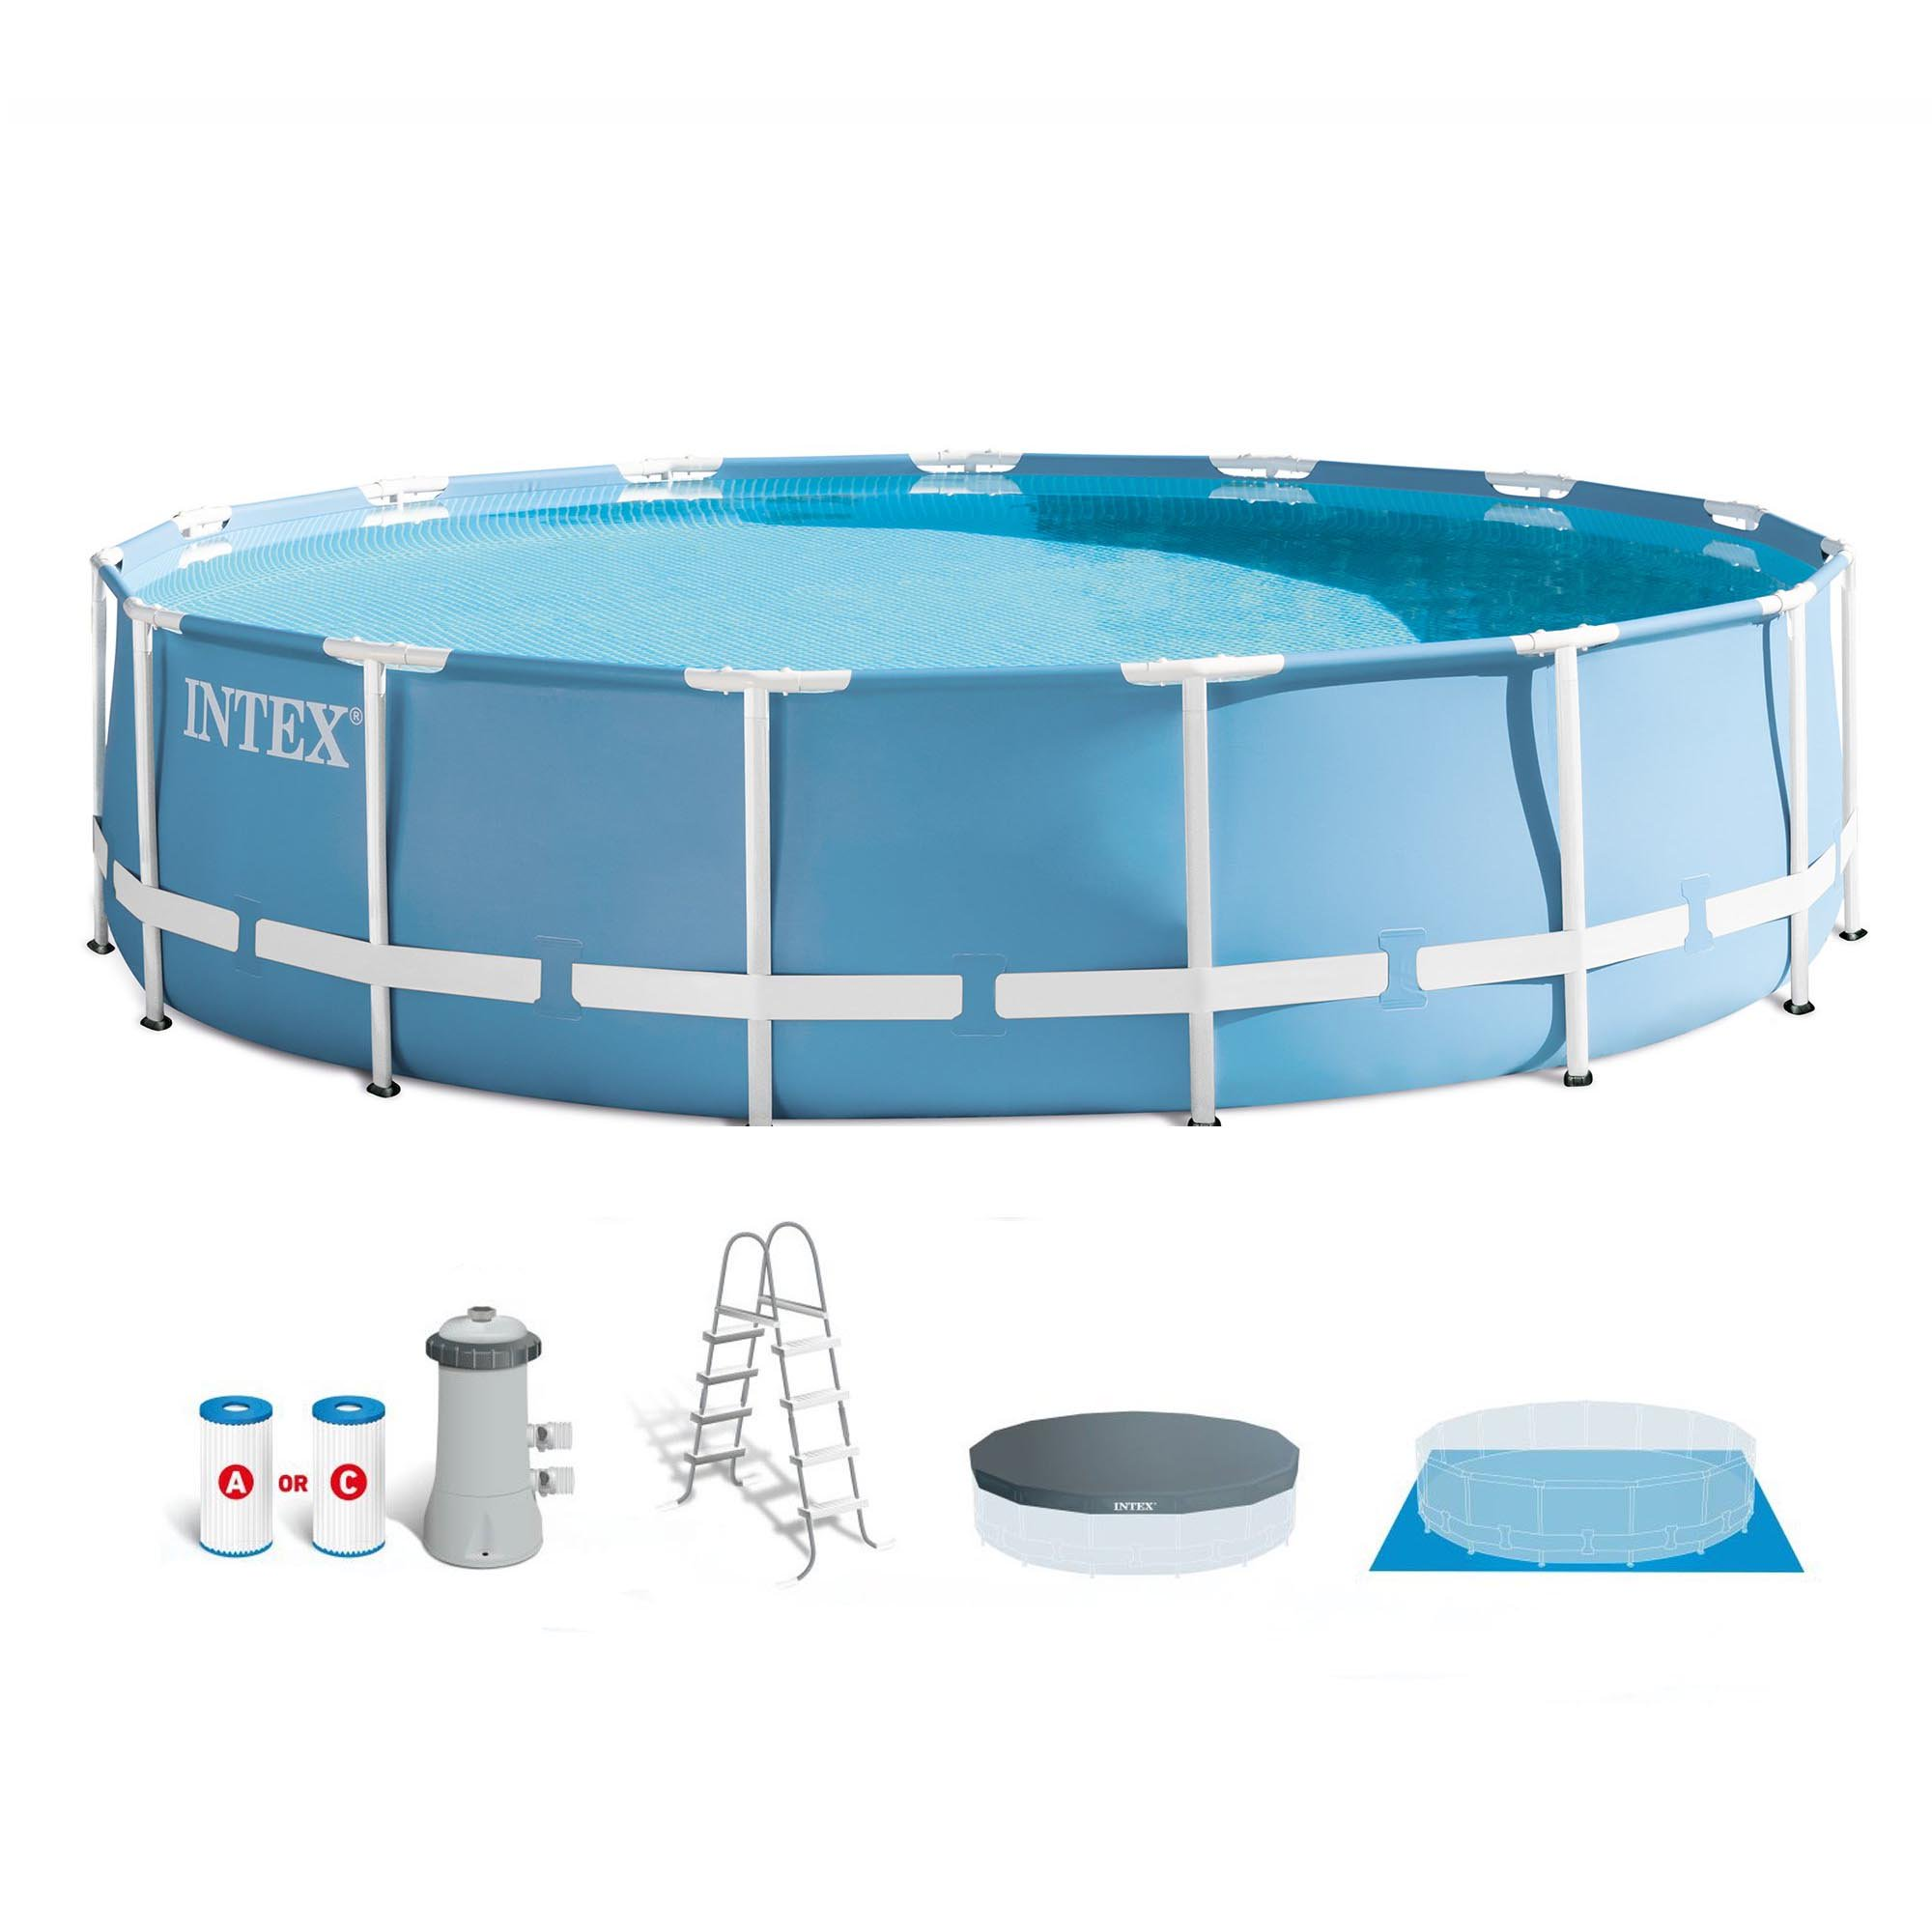 Intex 15 ft. x 48 in. Prism Frame Swimming Pool with 1,000 GPH Filter Pump